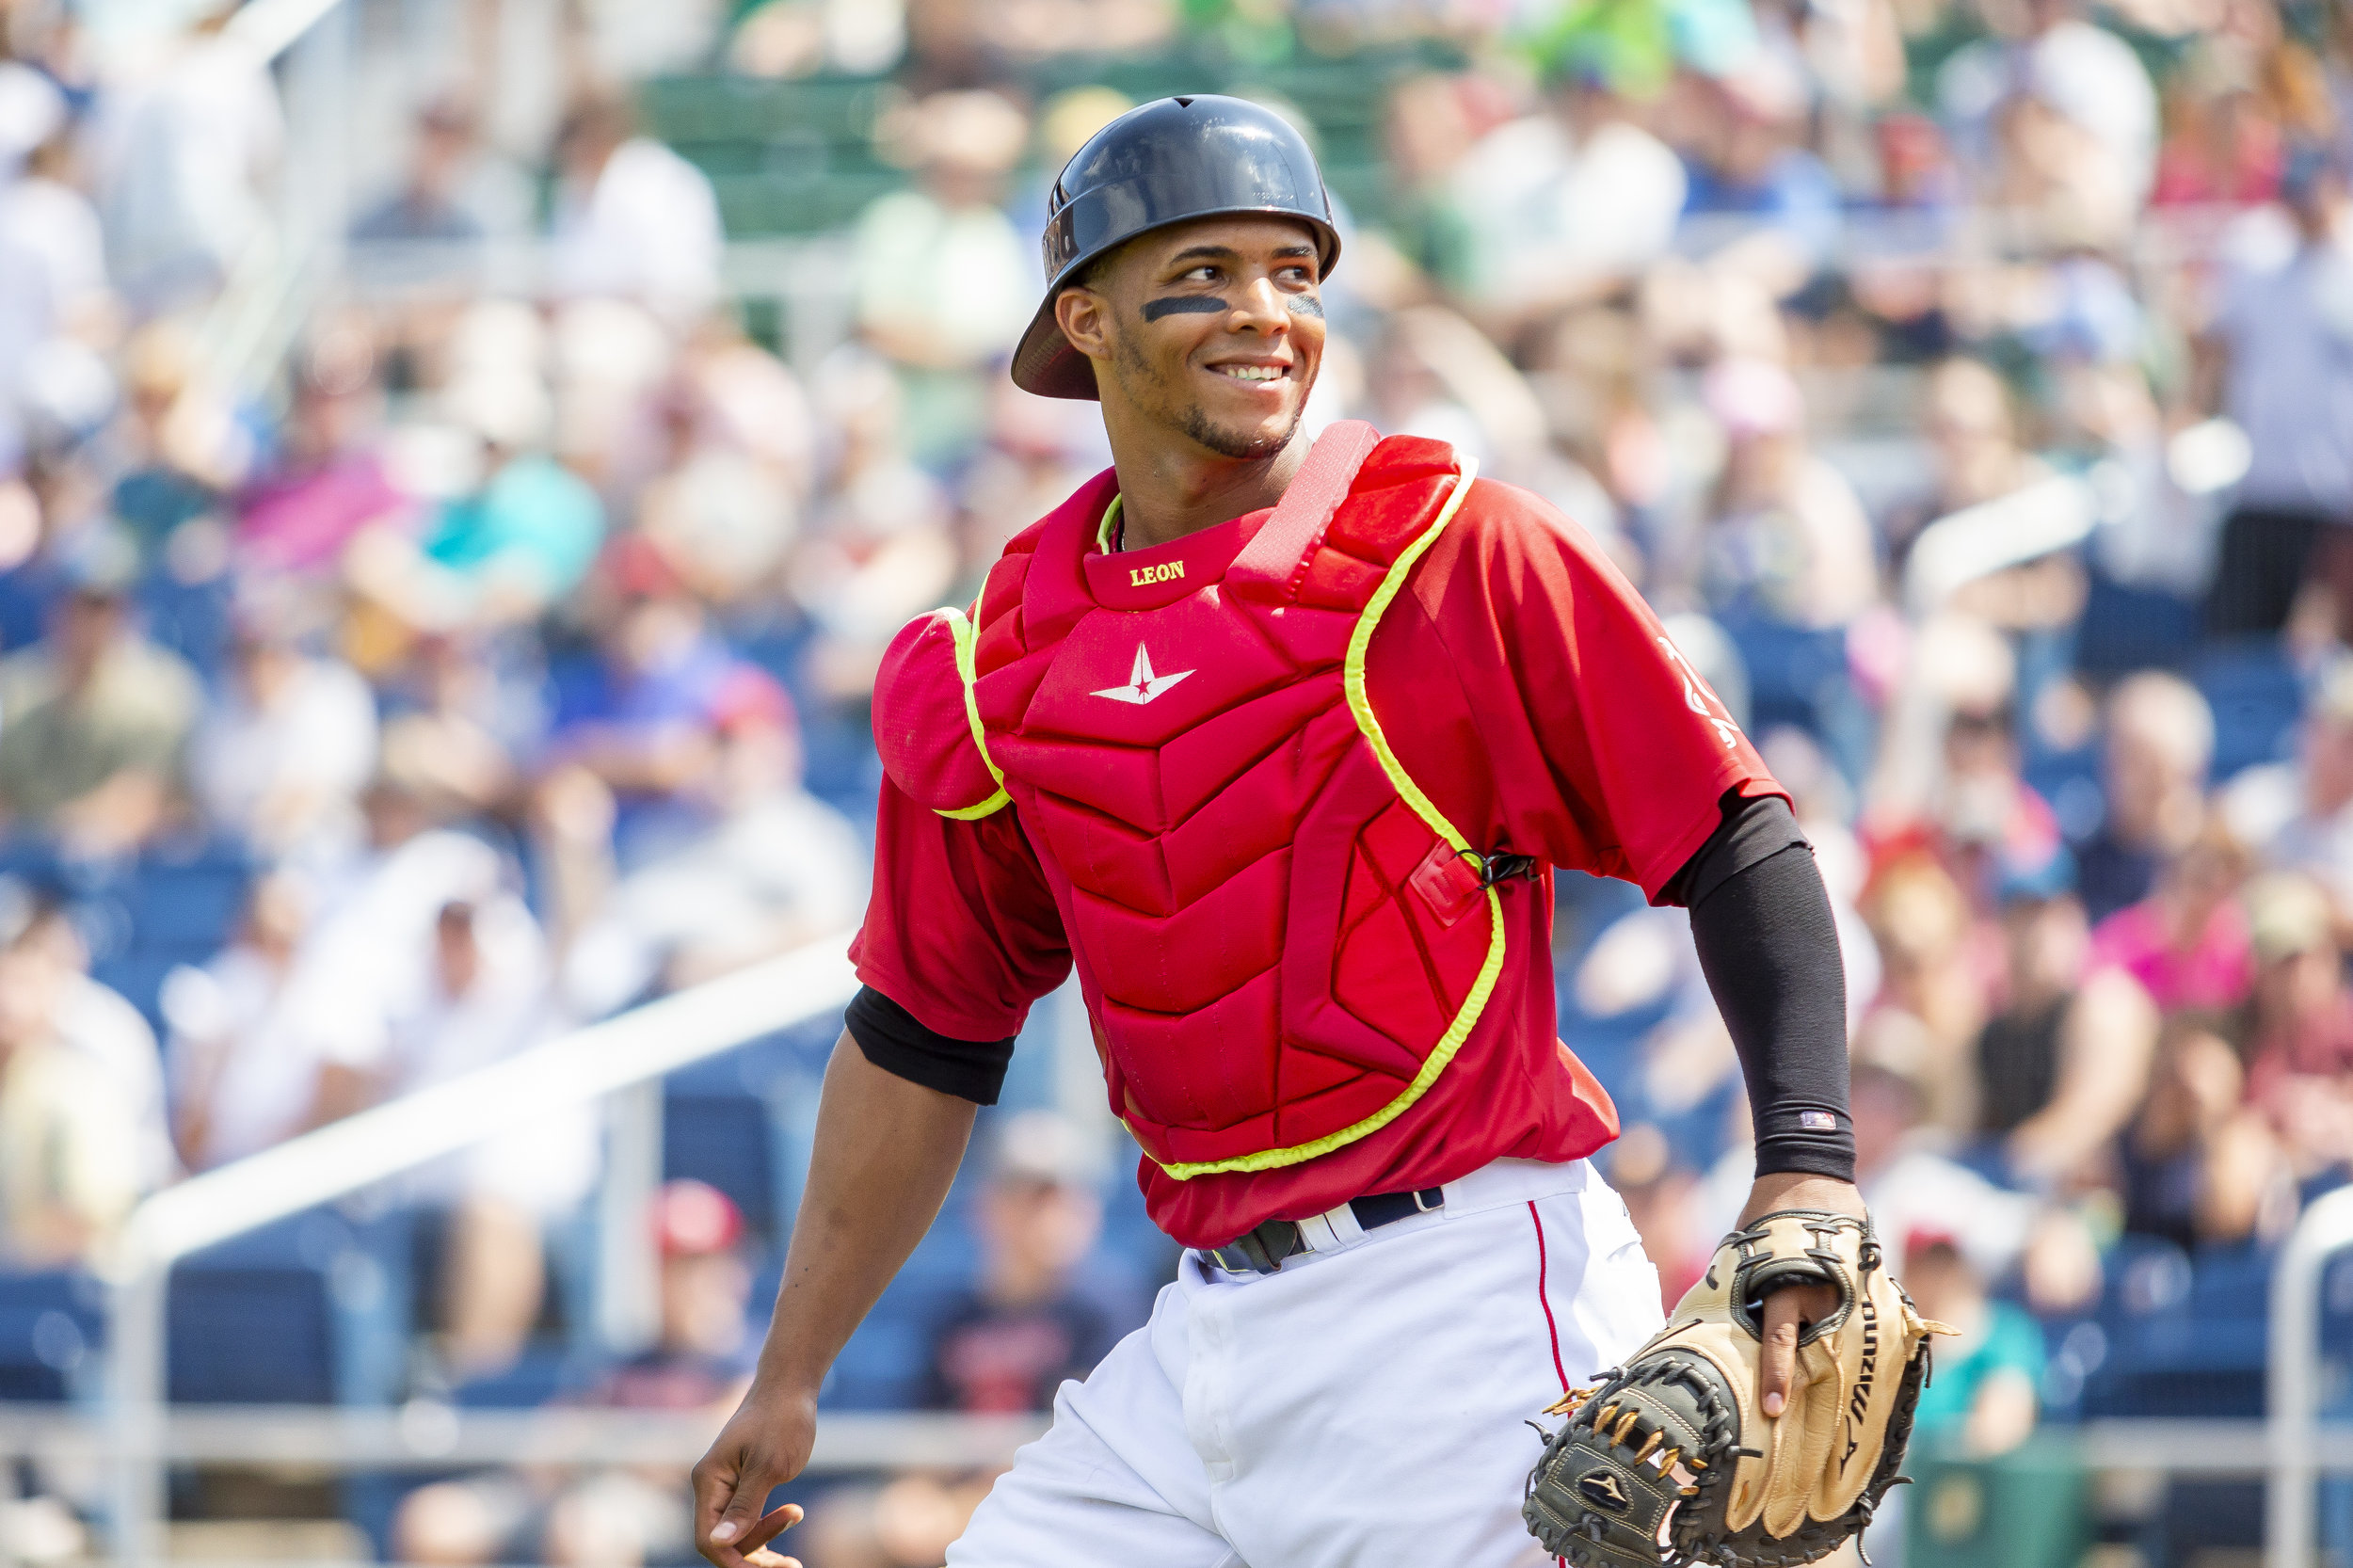 PORTLAND, ME - AUGUST 05:  Jhon Nunez #20 of the Portland Sea Dogs smiles at a fan in the fourth inning of a game against the Richmond Flying Squirrels on August 5, 2018 in Portland, ME at Hadlock Field . (Photo by Zachary Roy/Getty Images)